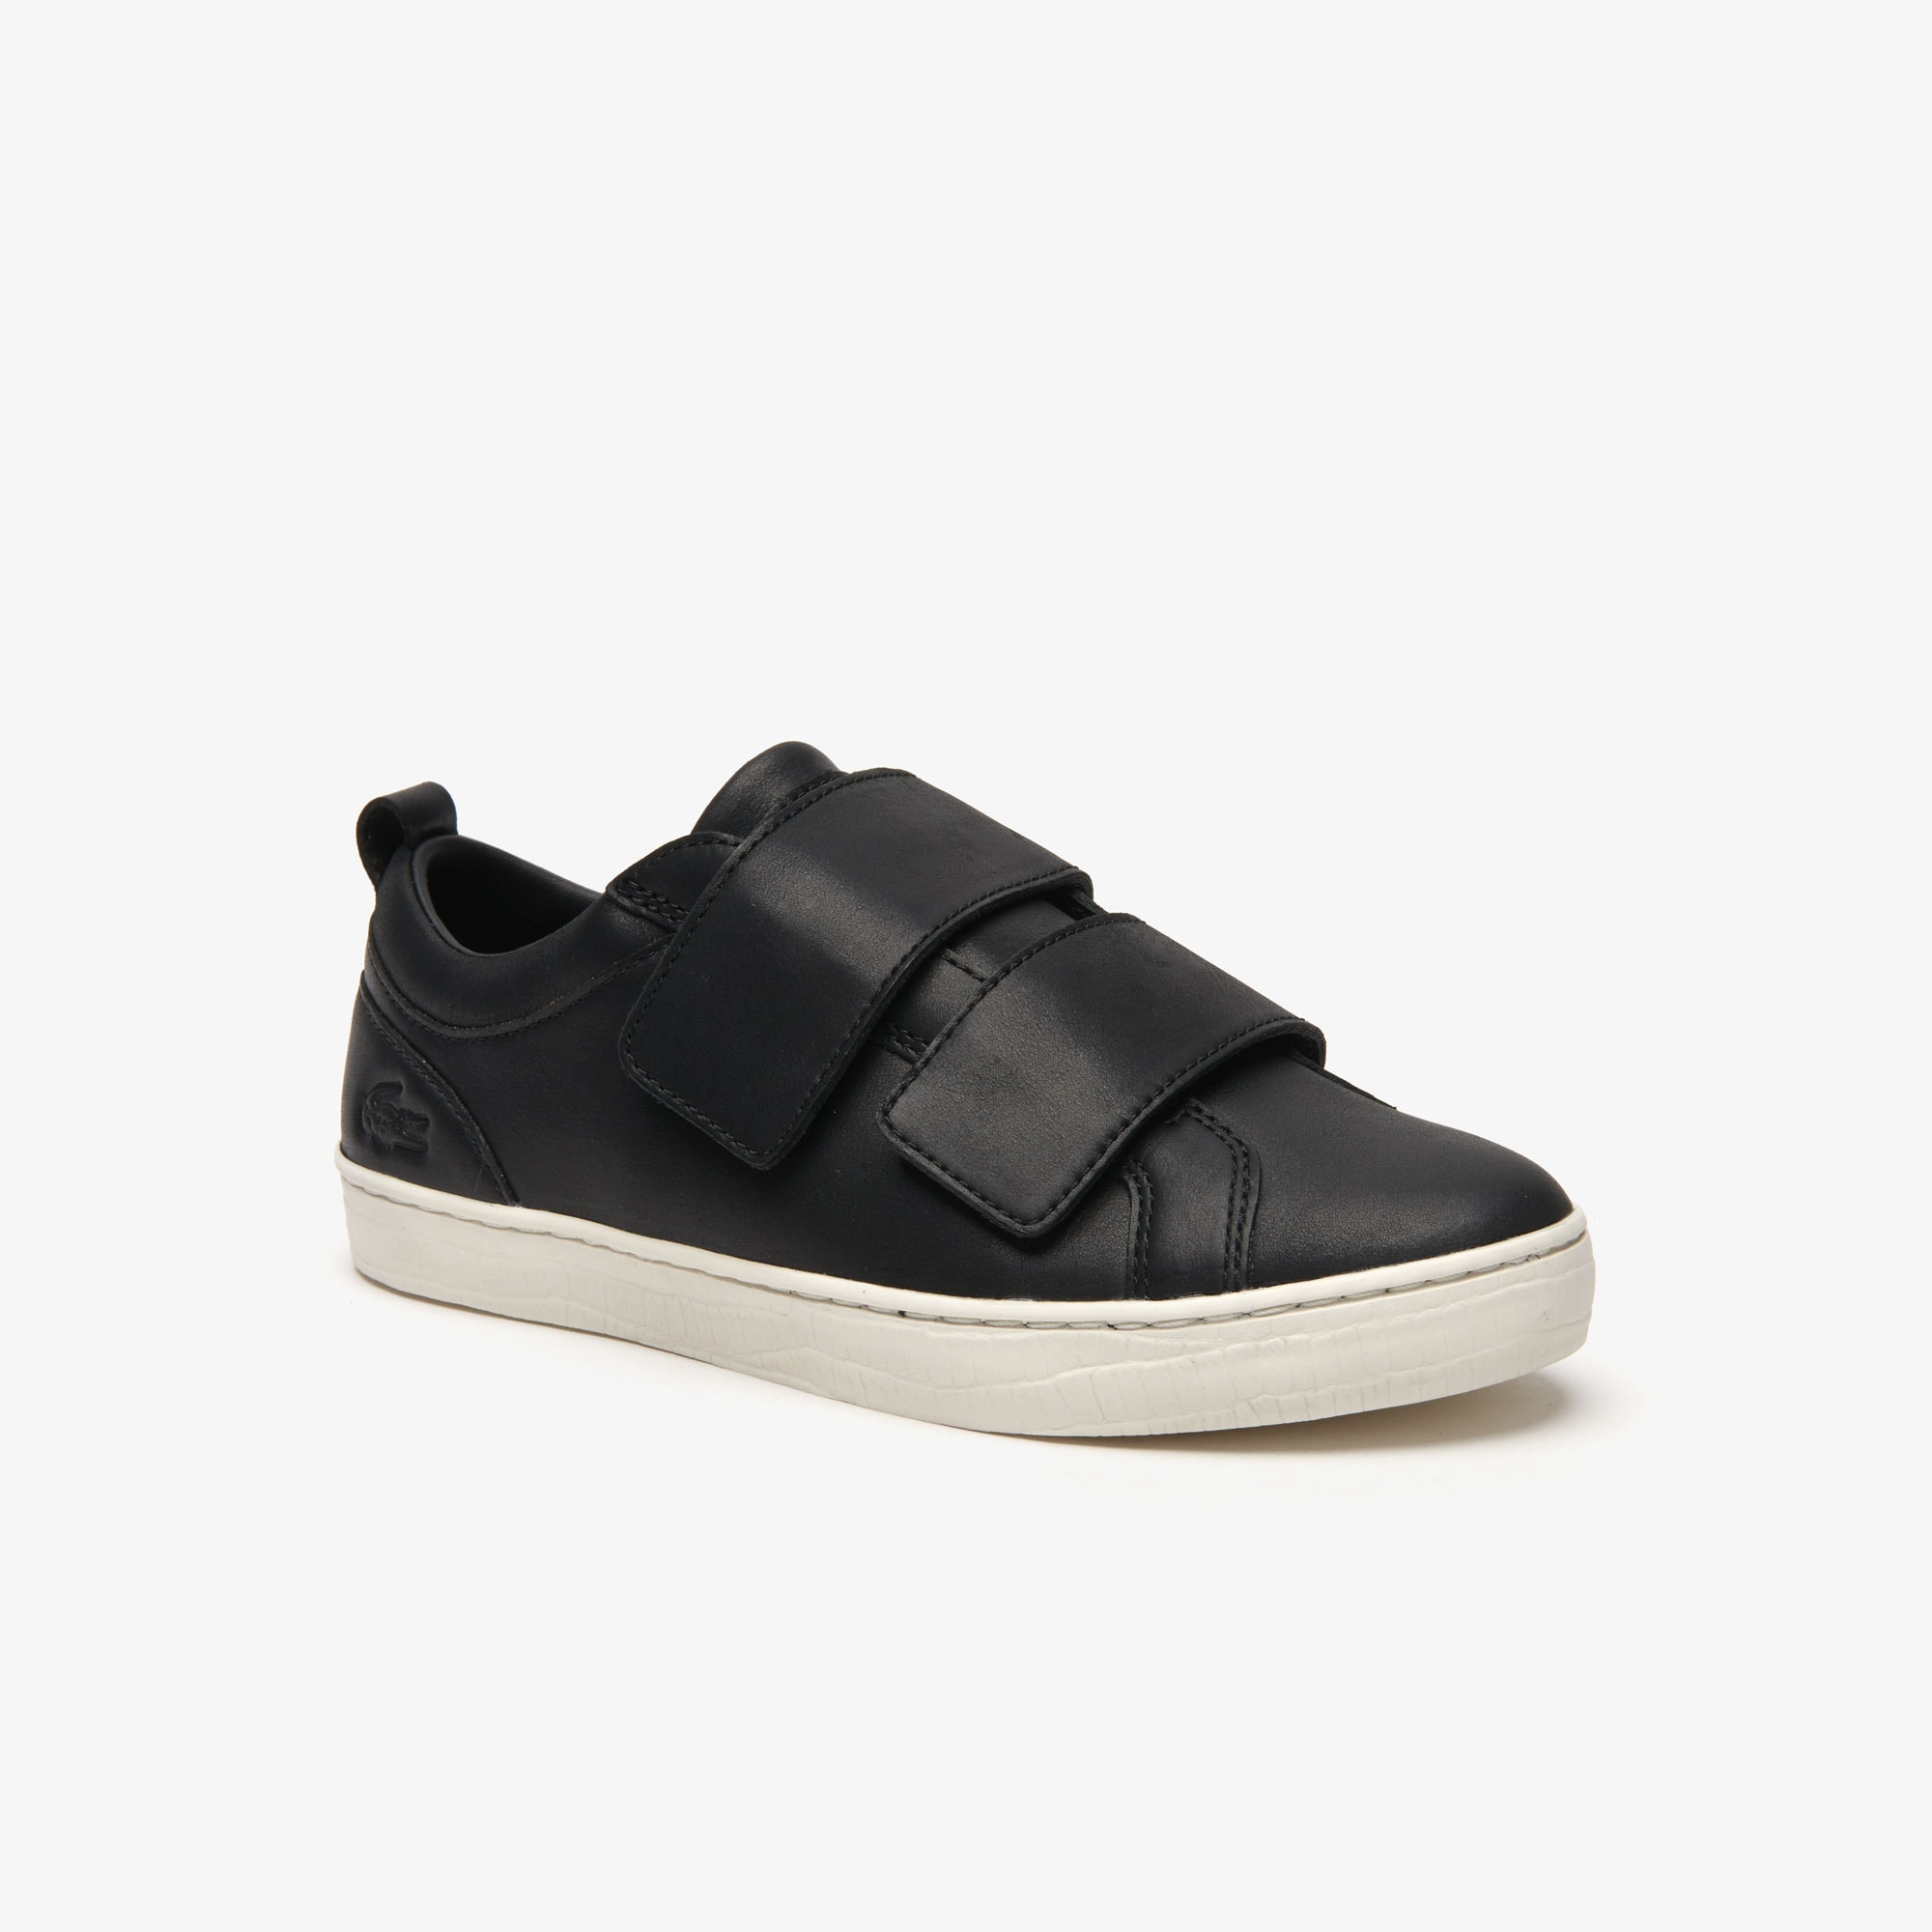 Lacoste Sneakers Women's Straightset Strap Leather Sneakers